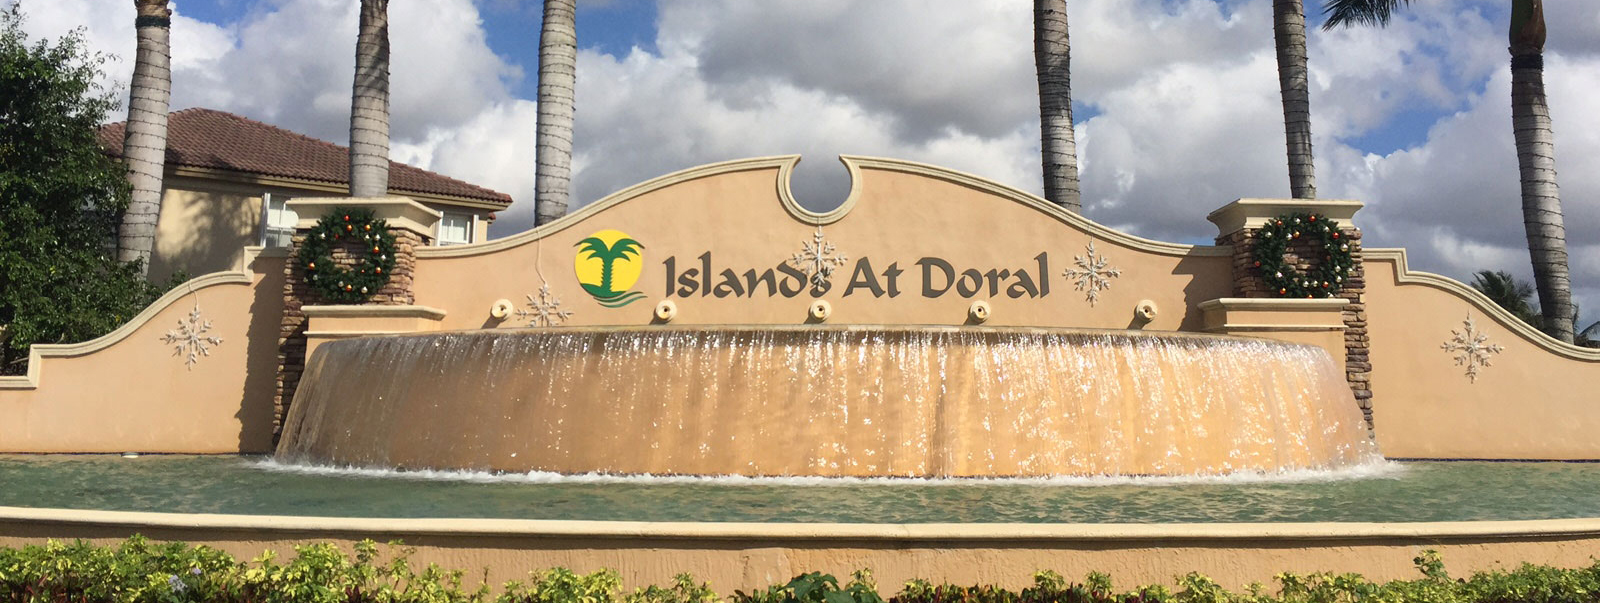 Islands at Doral CDD Image